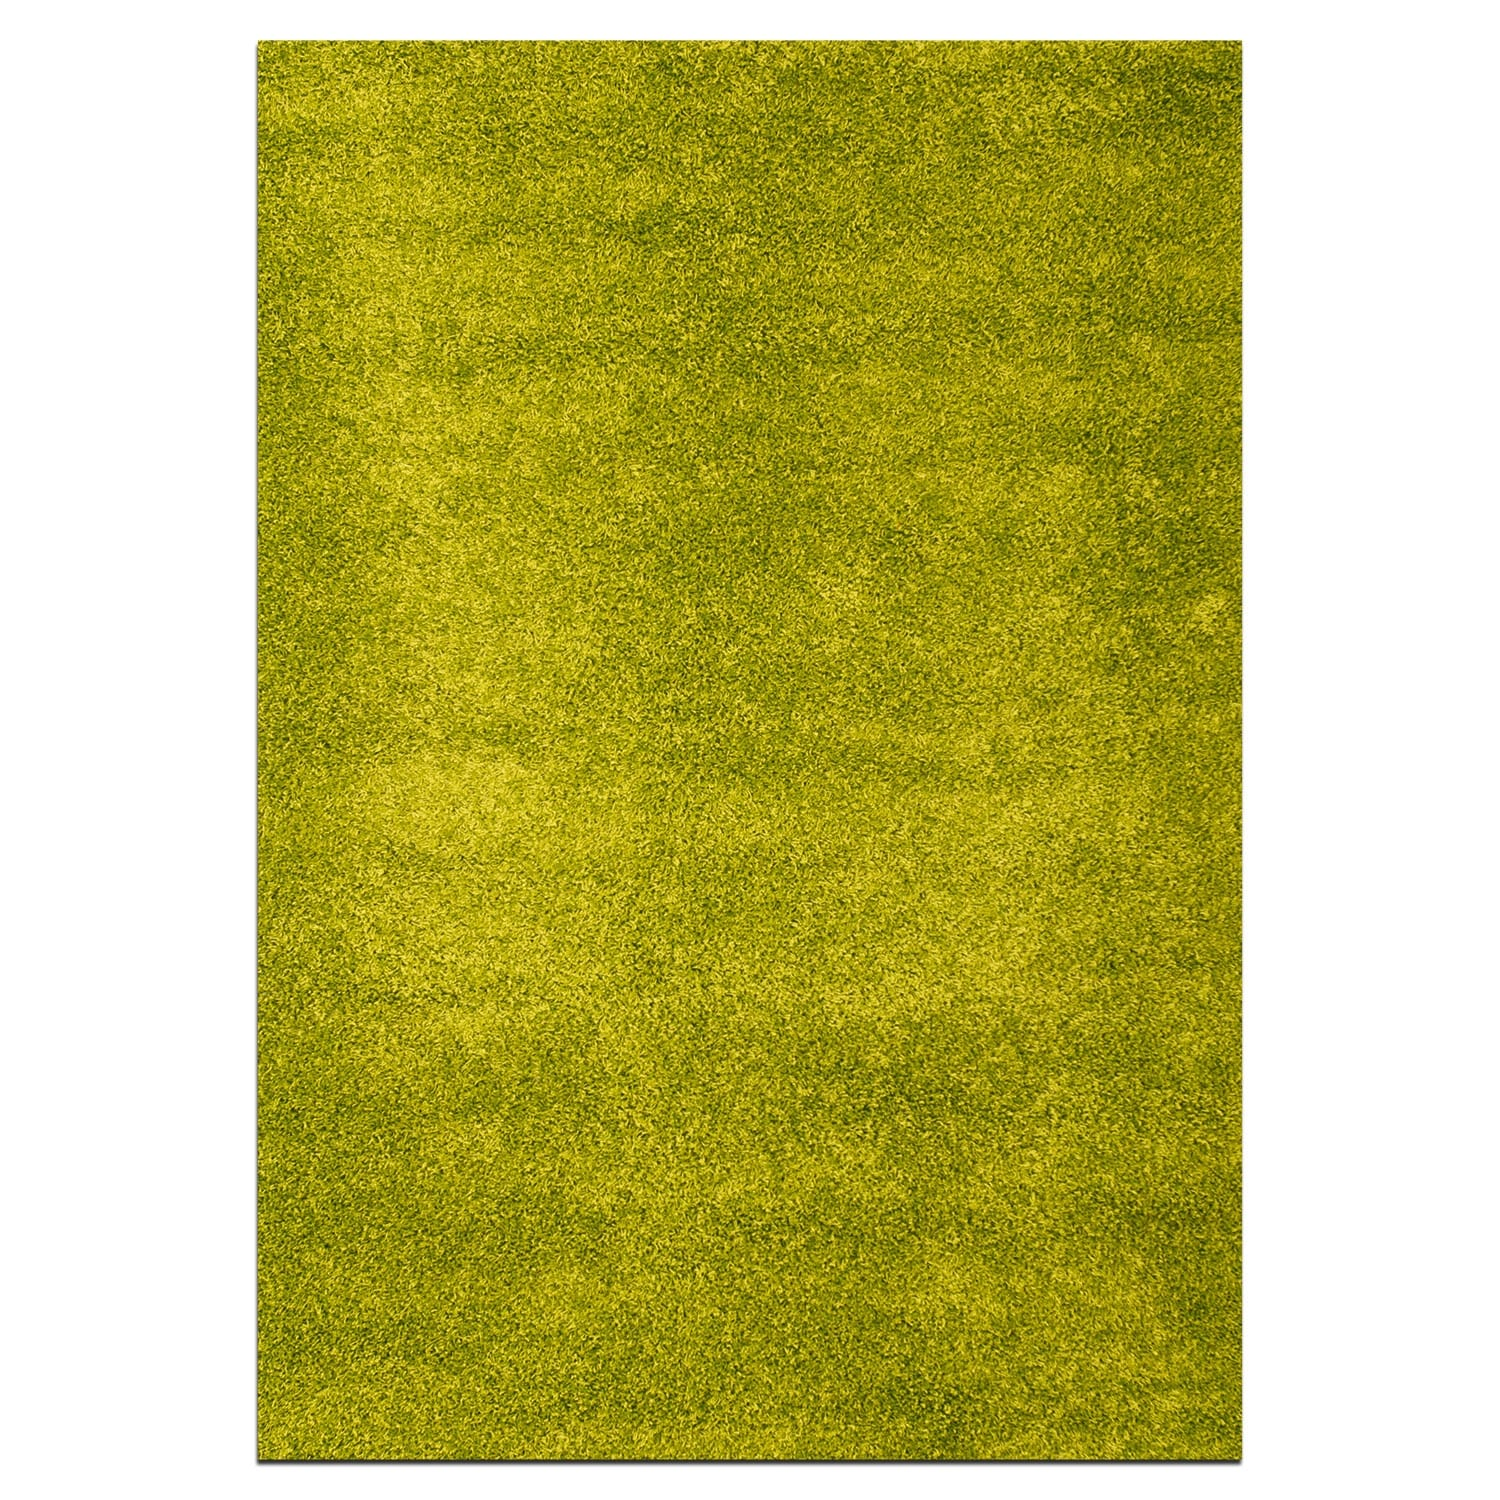 Rugs - Domino Green Shag Area Rug (5' x 8')